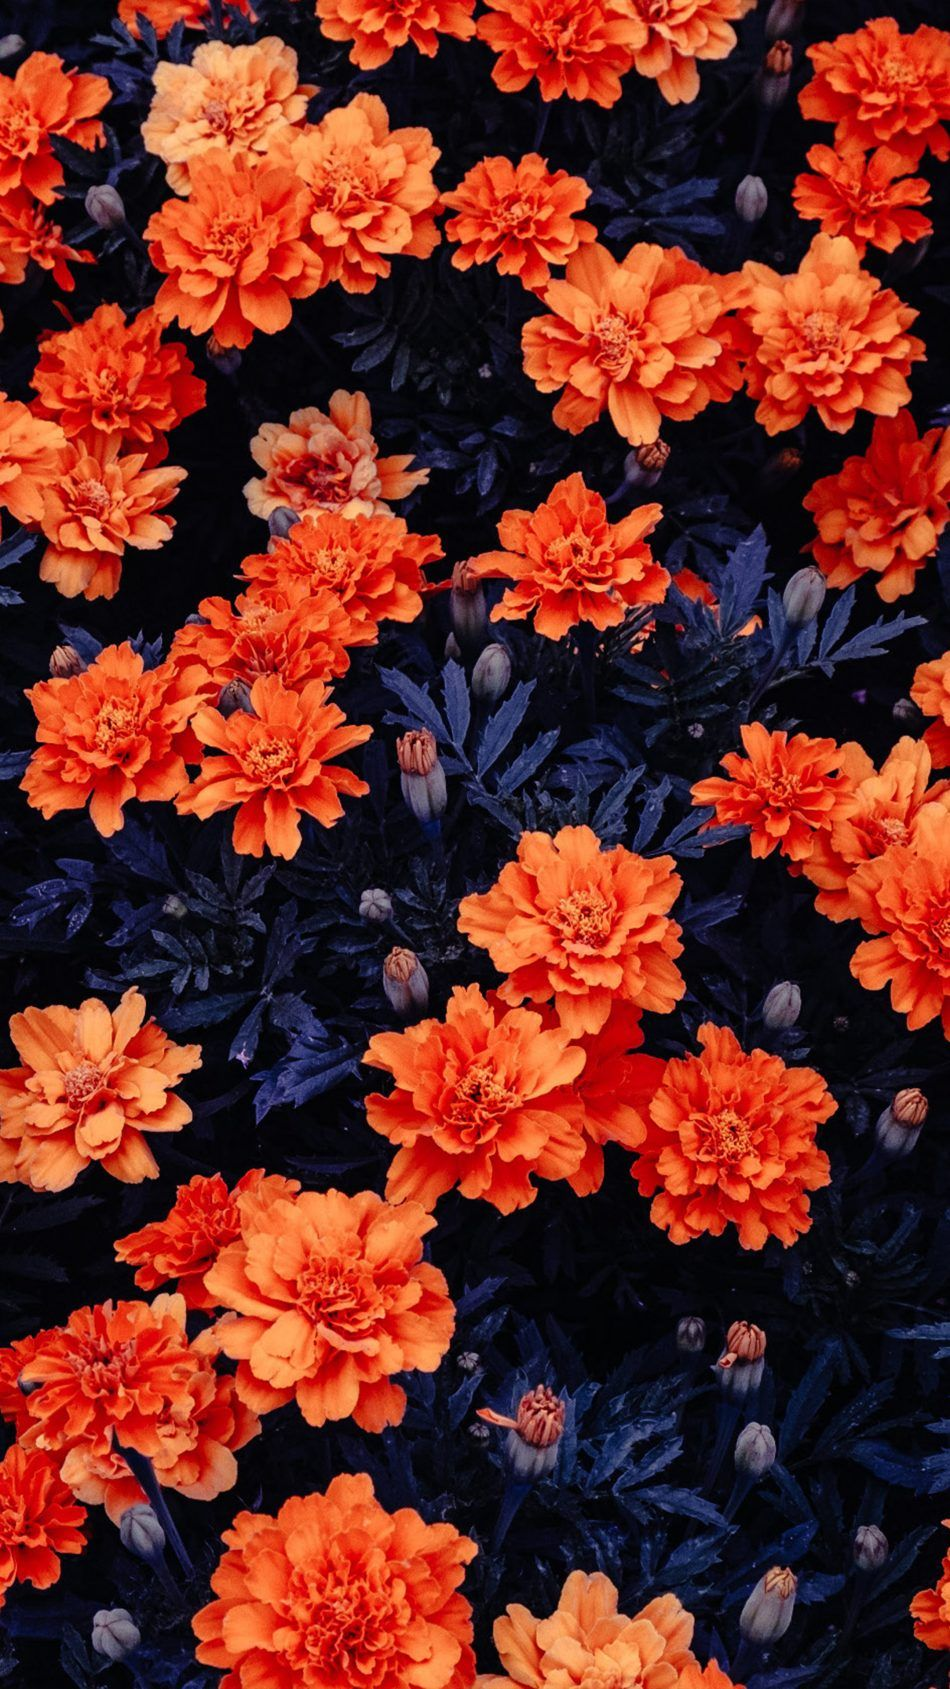 Download New Flowers Phone Wallpaper HD Today by mordeo.org